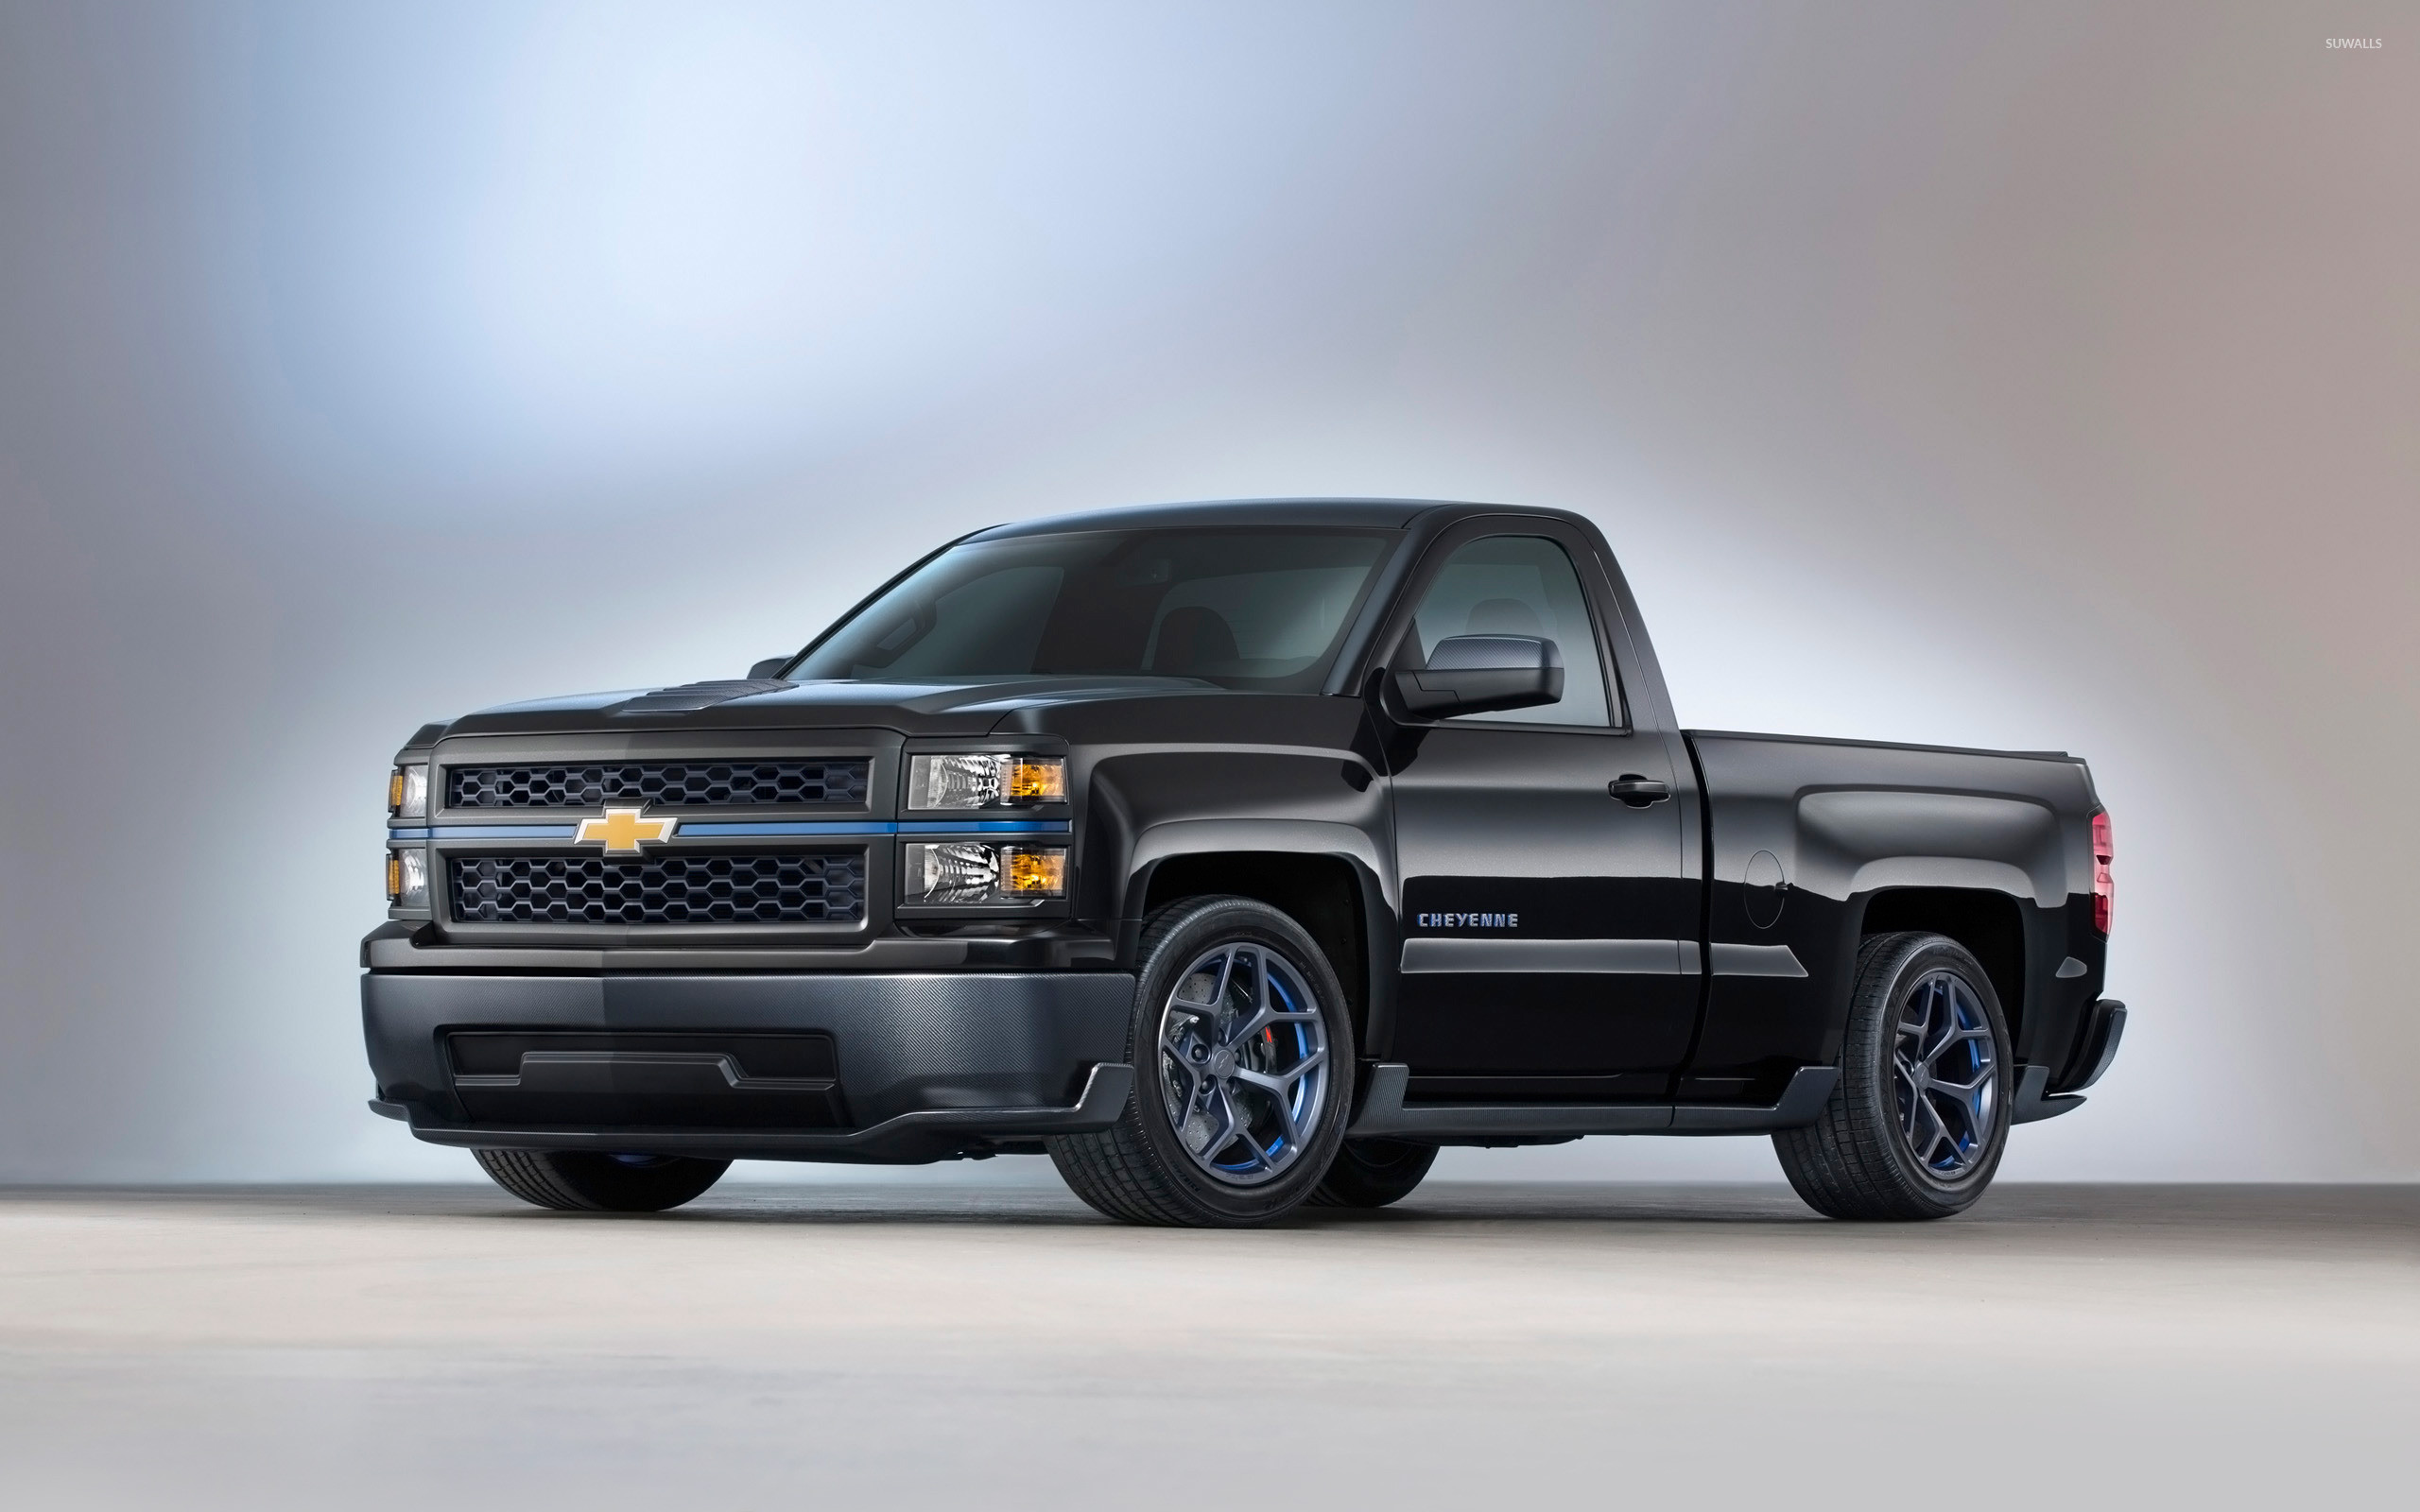 2560x1600 2014 Chevrolet Silverado wallpaper - Car wallpapers - #25347